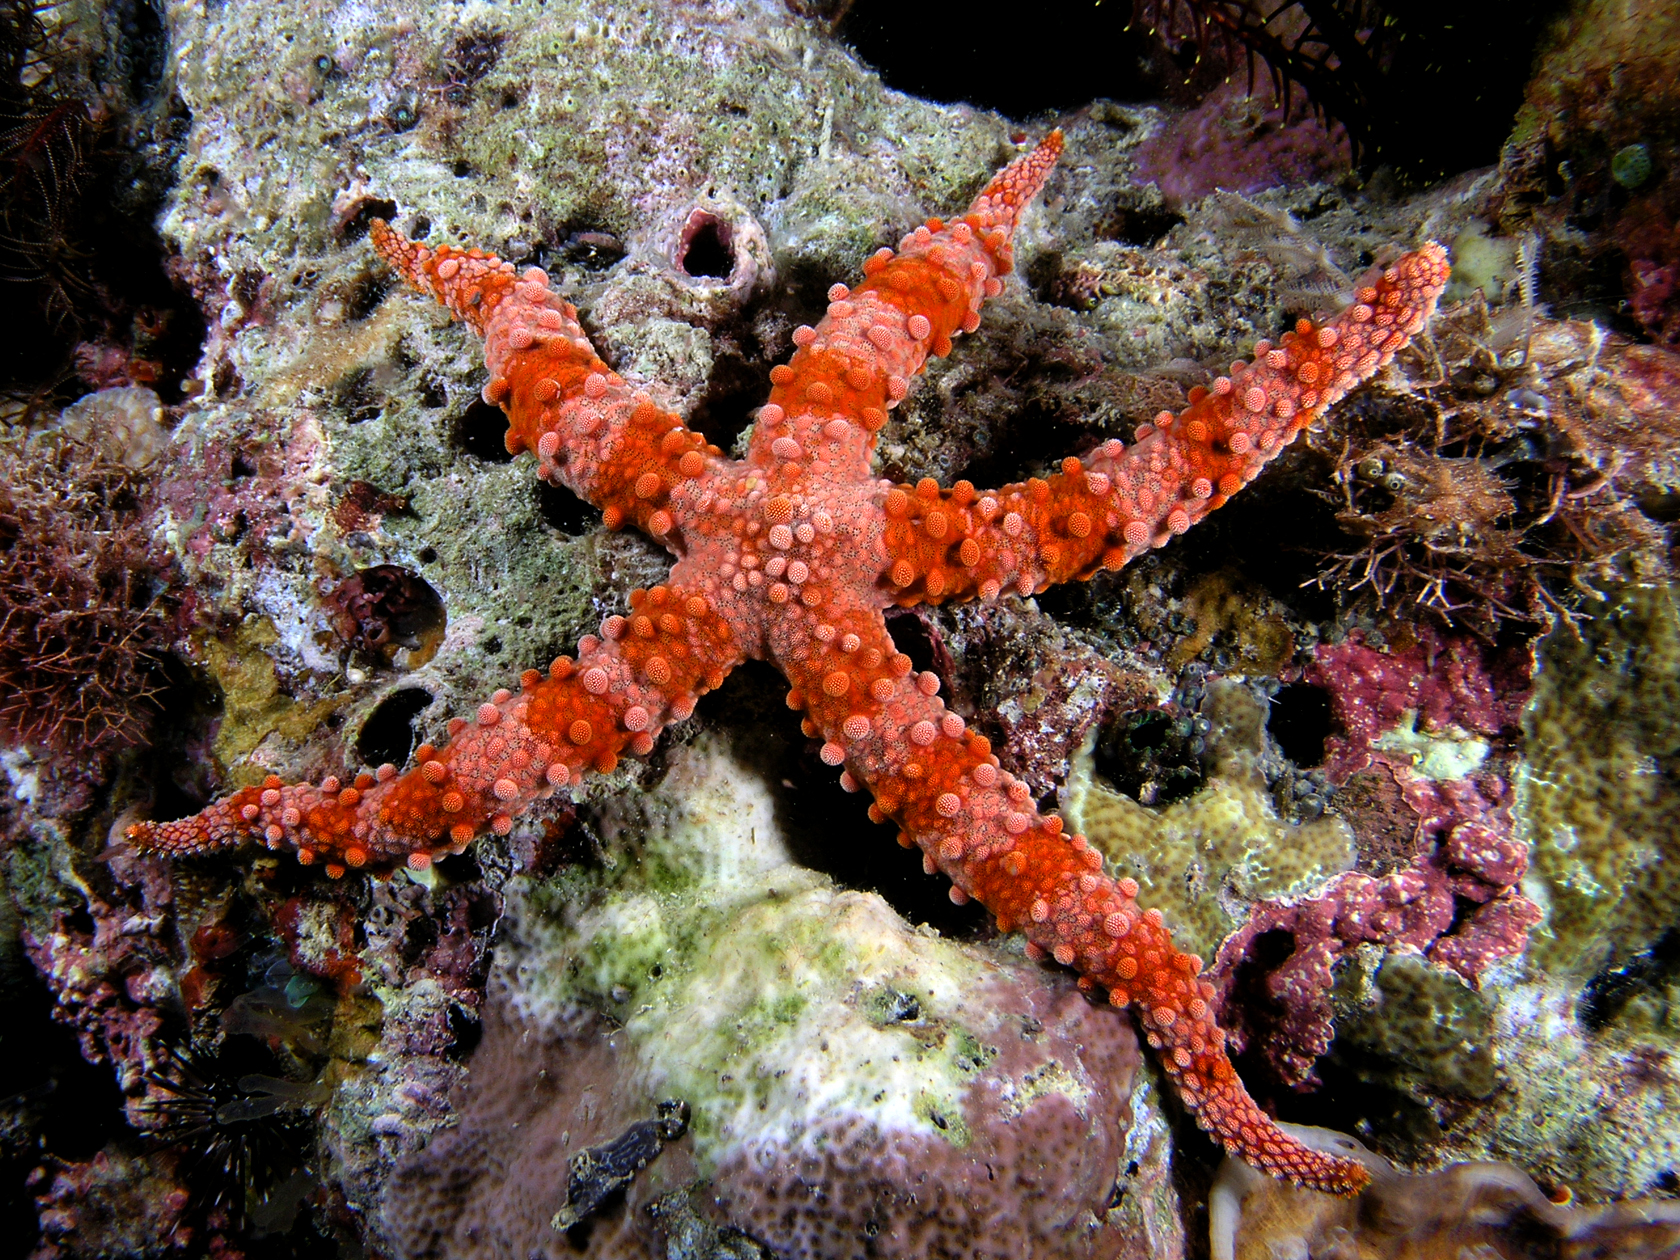 Starfish red komodo by Nick Hobgood via Wikipedia